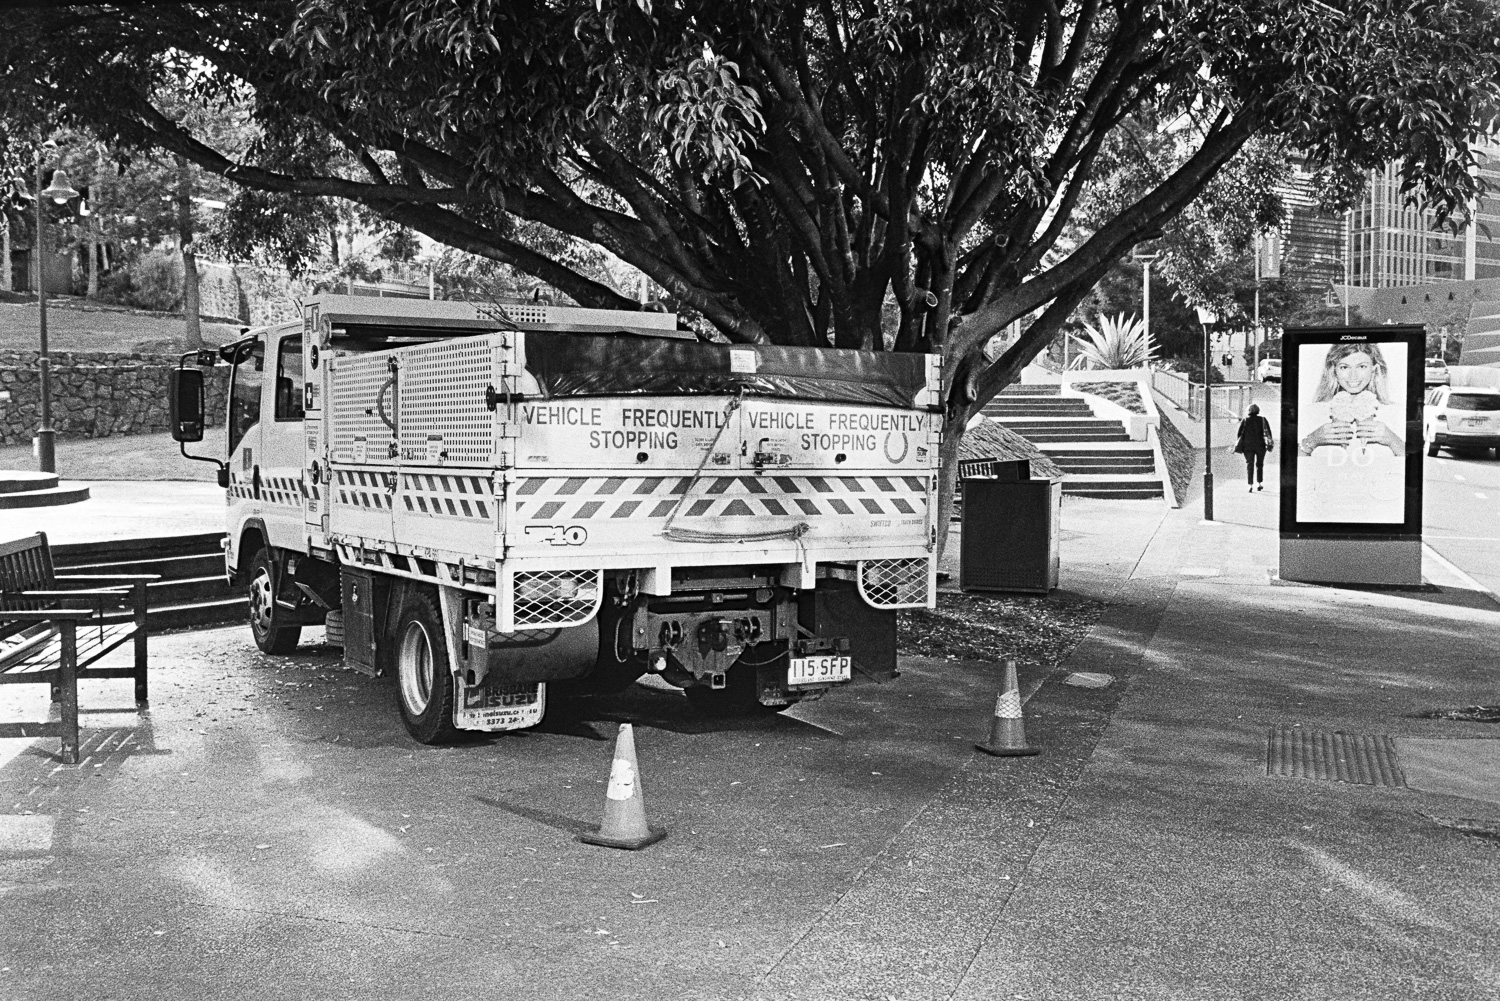 20170821 - Roll 152 - 013-Nick-Bedford,-Photographer-Black and White, Brisbane, Film, Kodak Tri-X 400, Leica M7, Street Photography, Voigtlander 35mm F1.7 Ultron.jpg